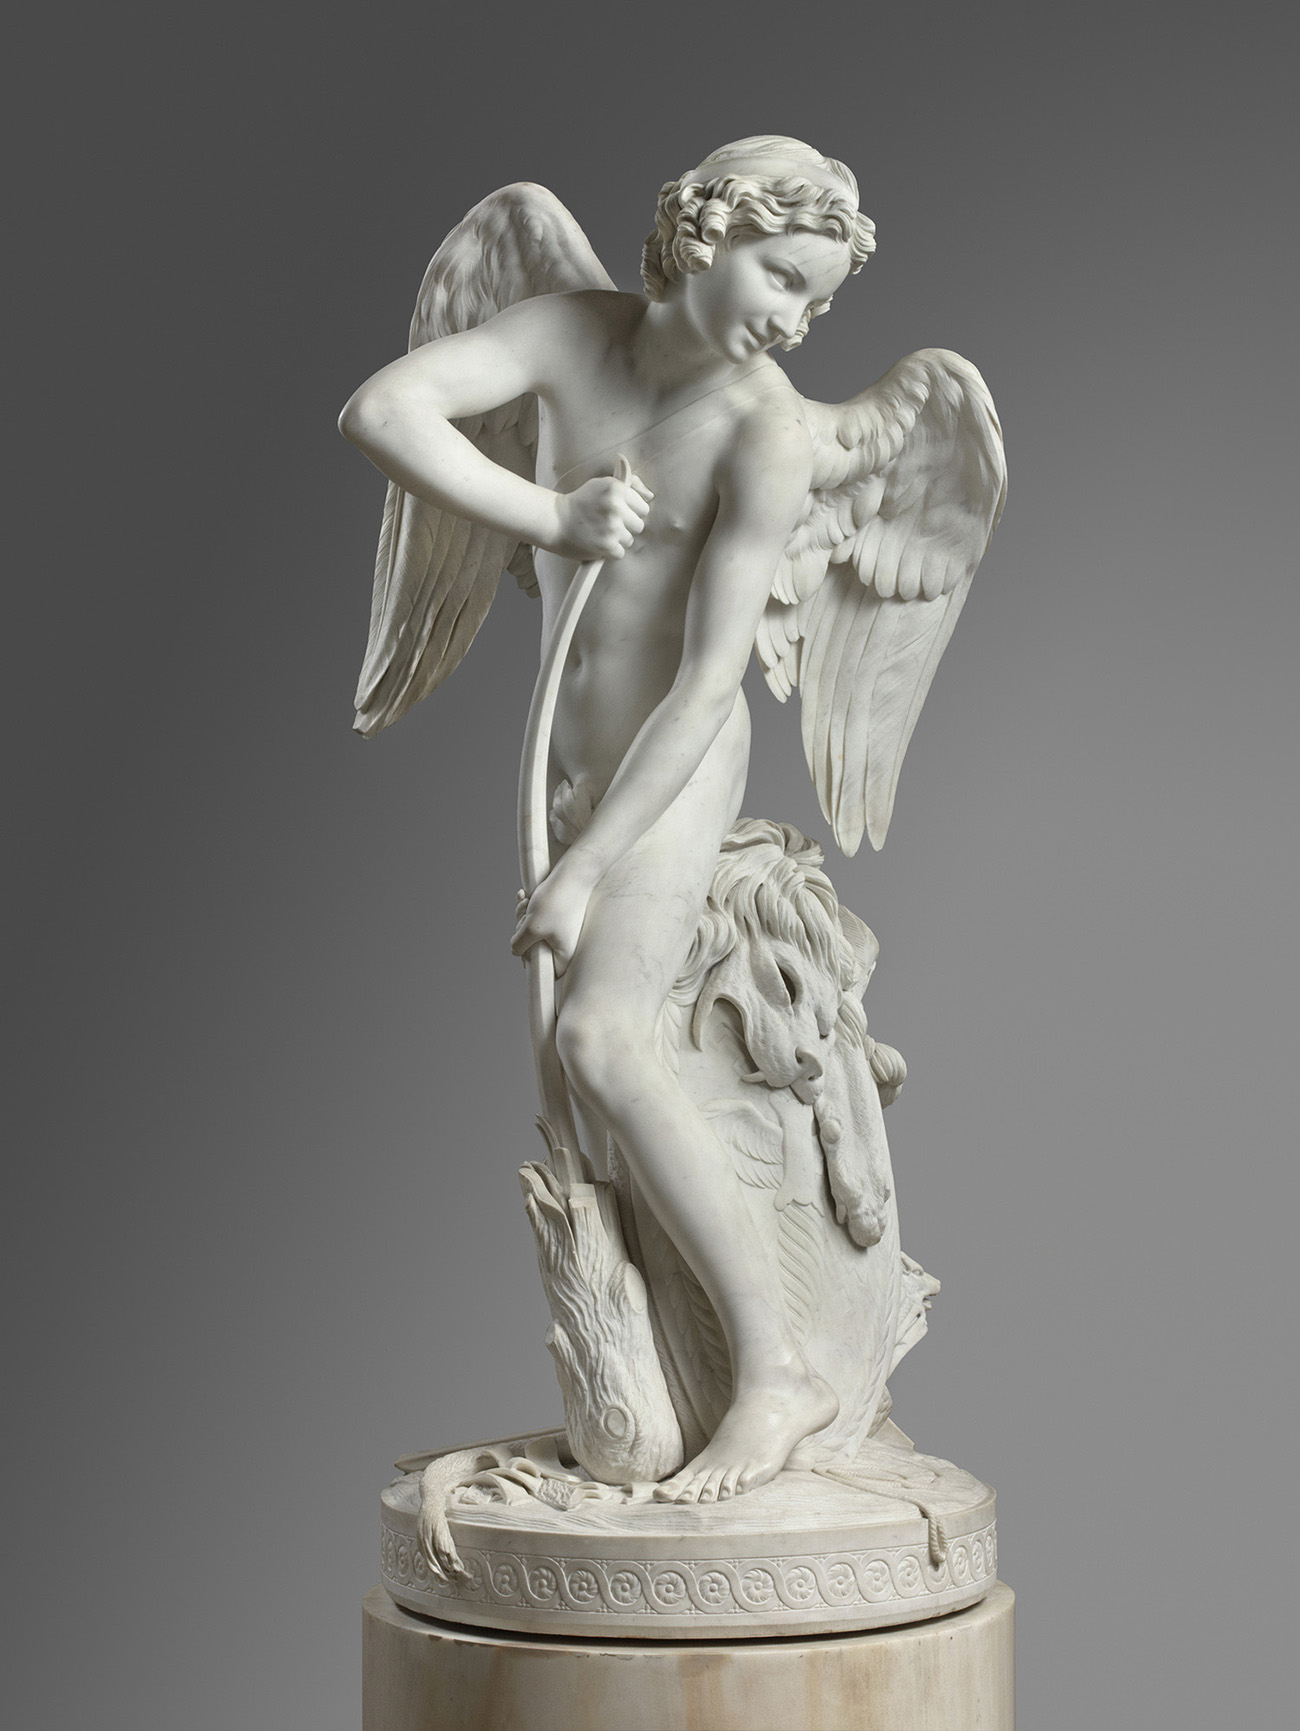 Side view of Edme Bouchardon's marble sculpture of Cupid